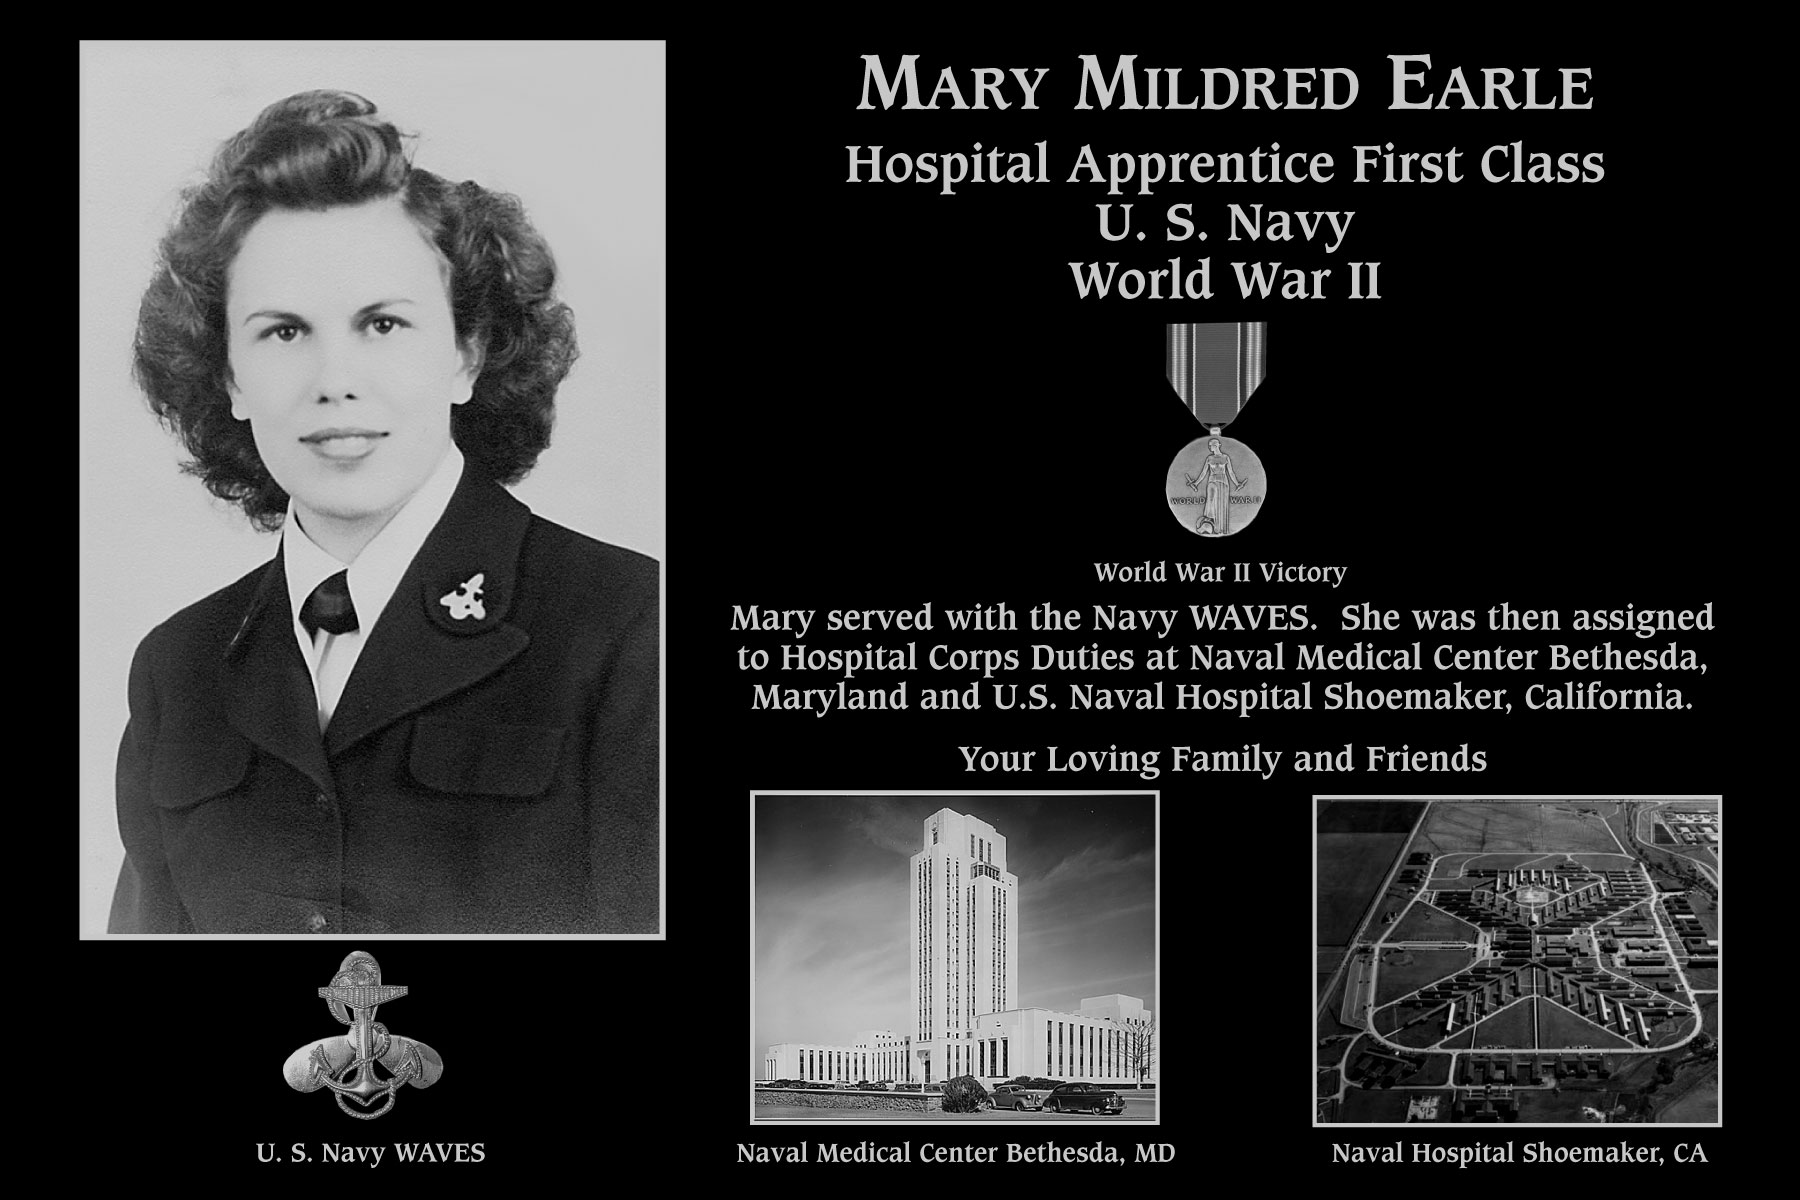 Mary Mildred Earle